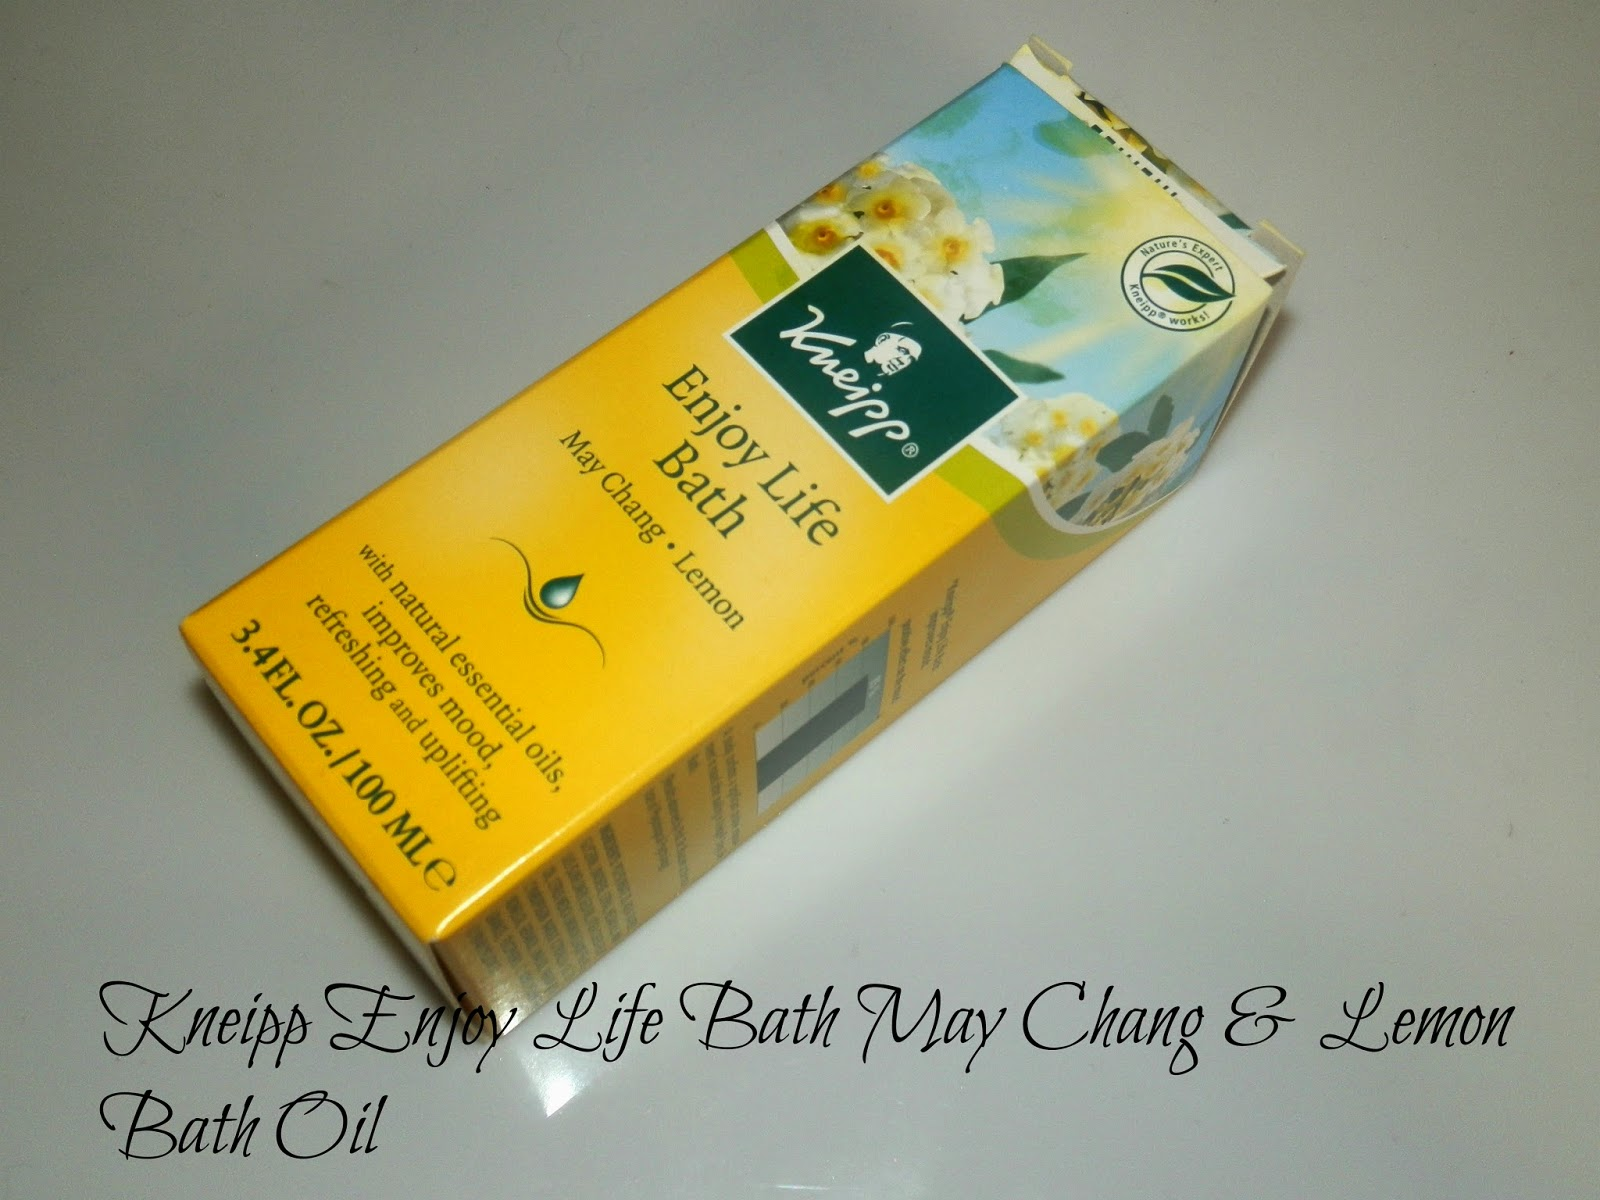 Kneipp Enjoy Life Bath May Chang & Lemon Bath Oil Reviews